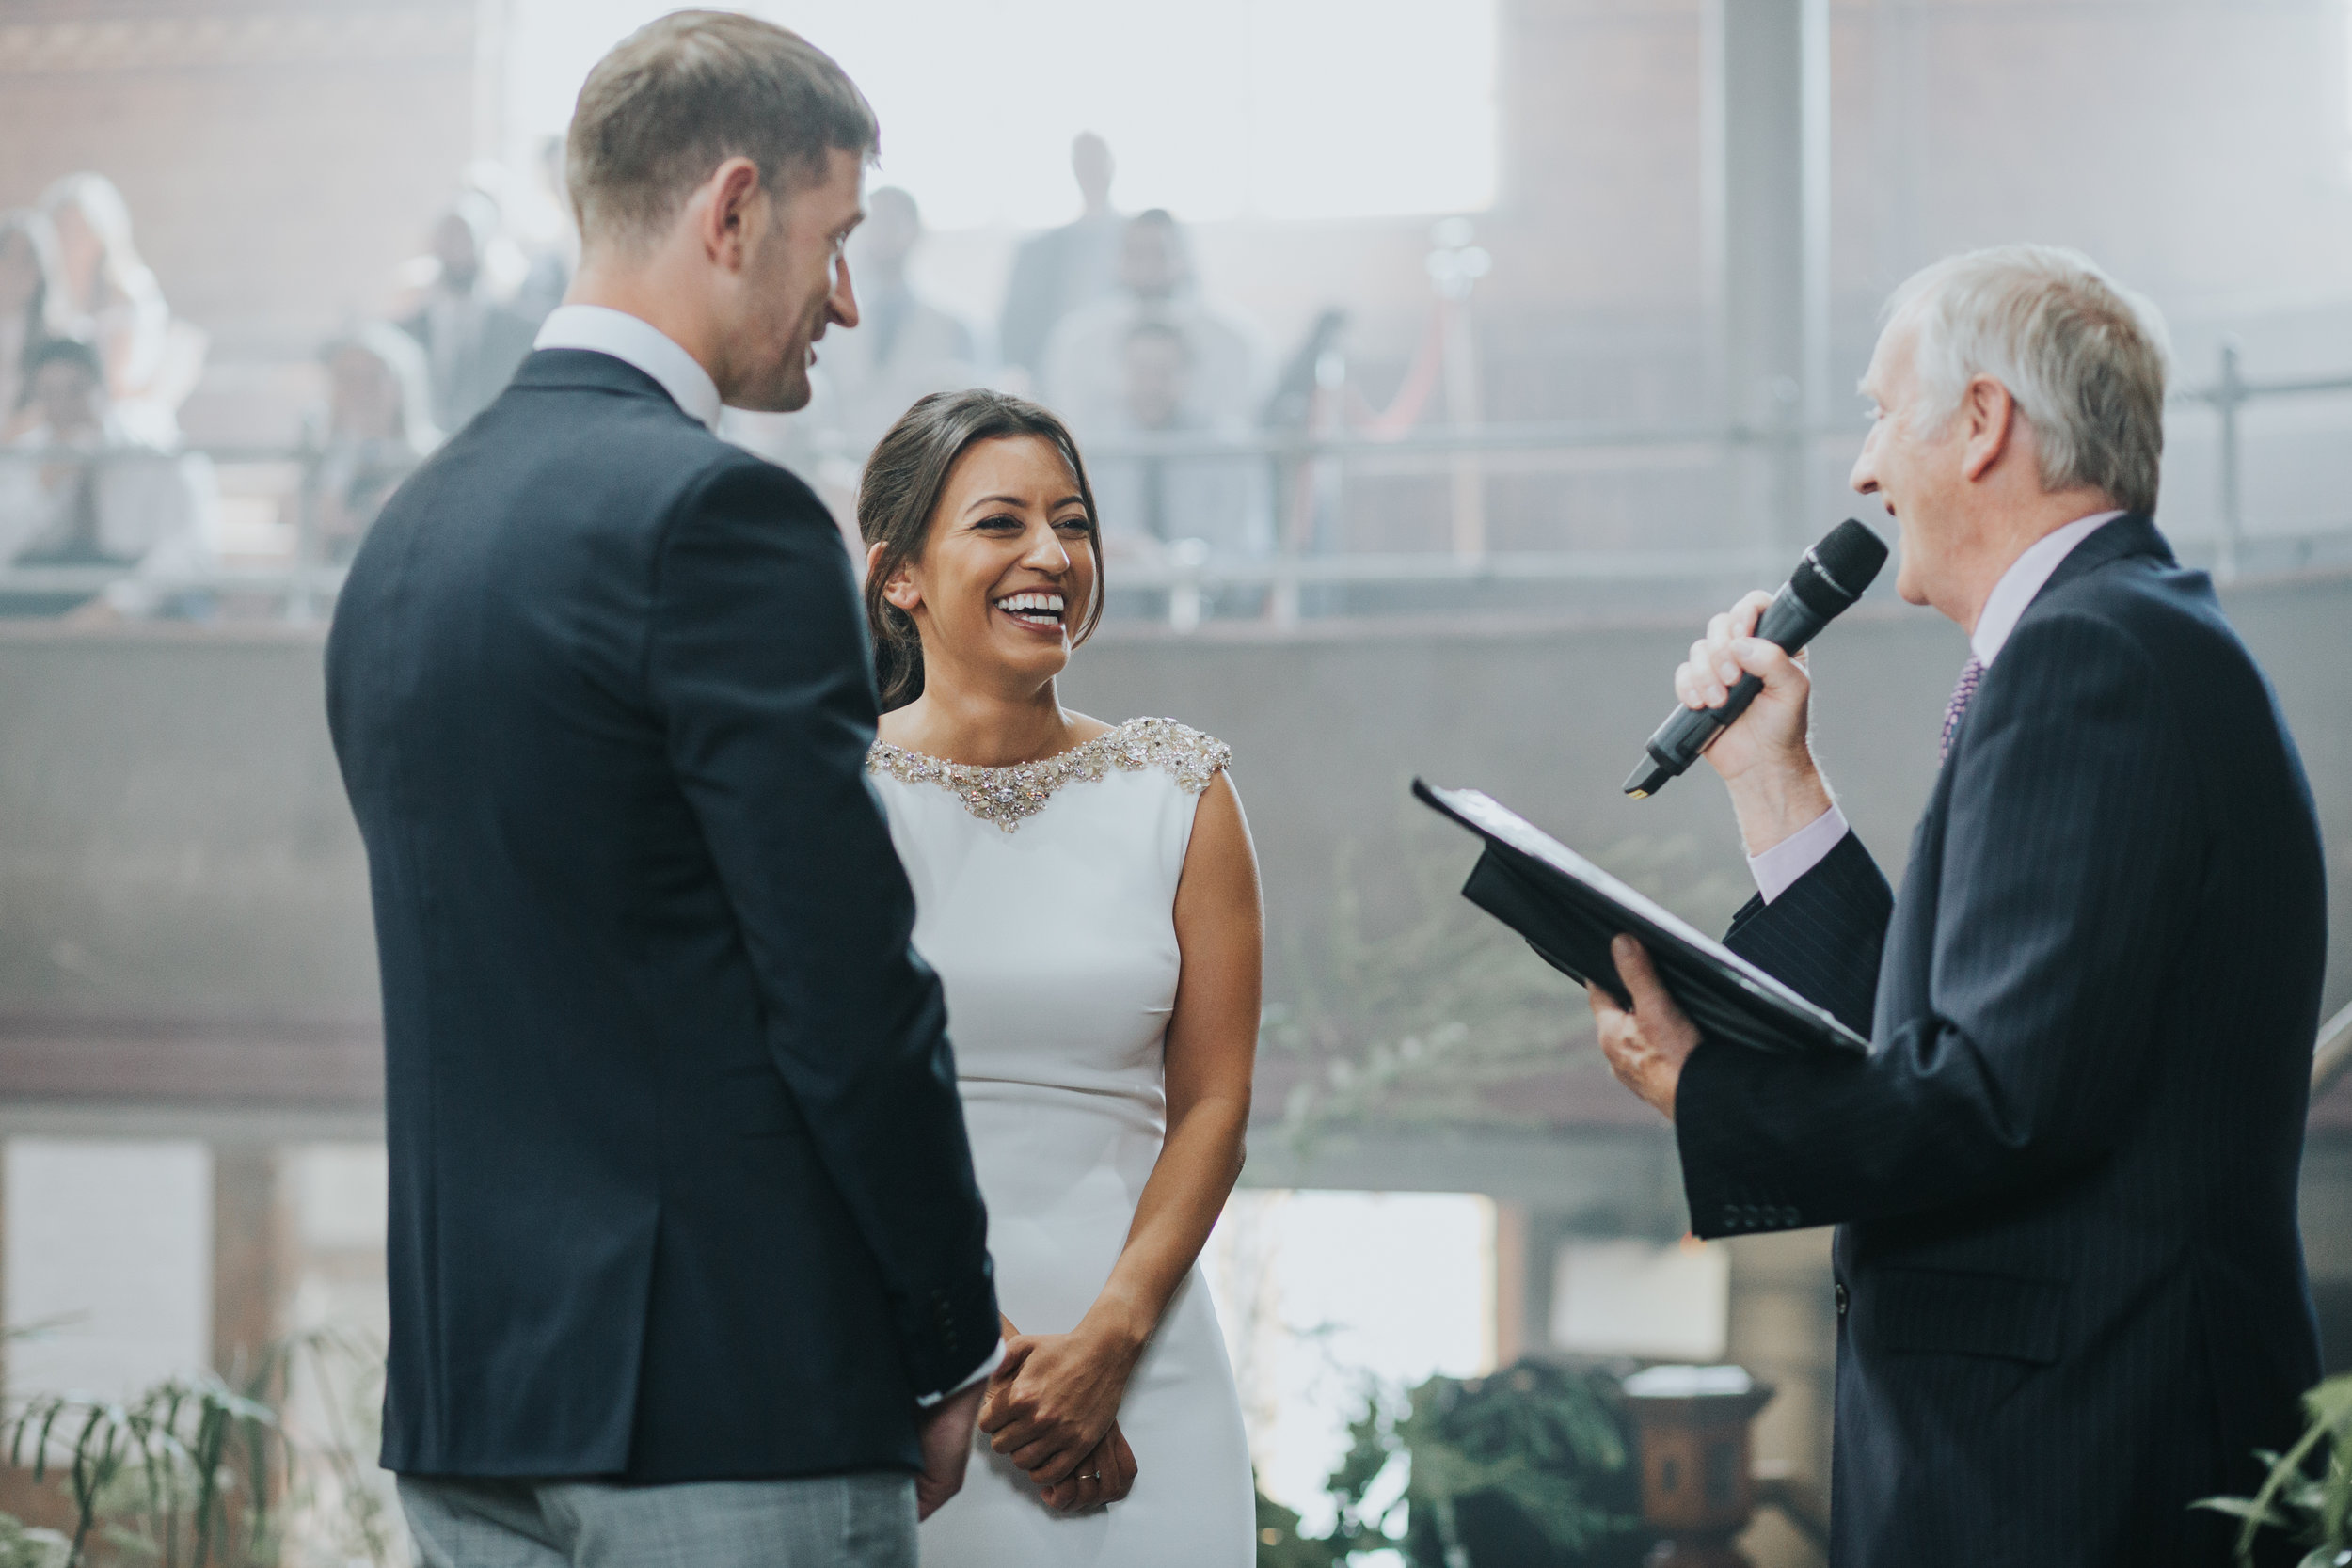 Bride laughing as the officiant makes a joke.